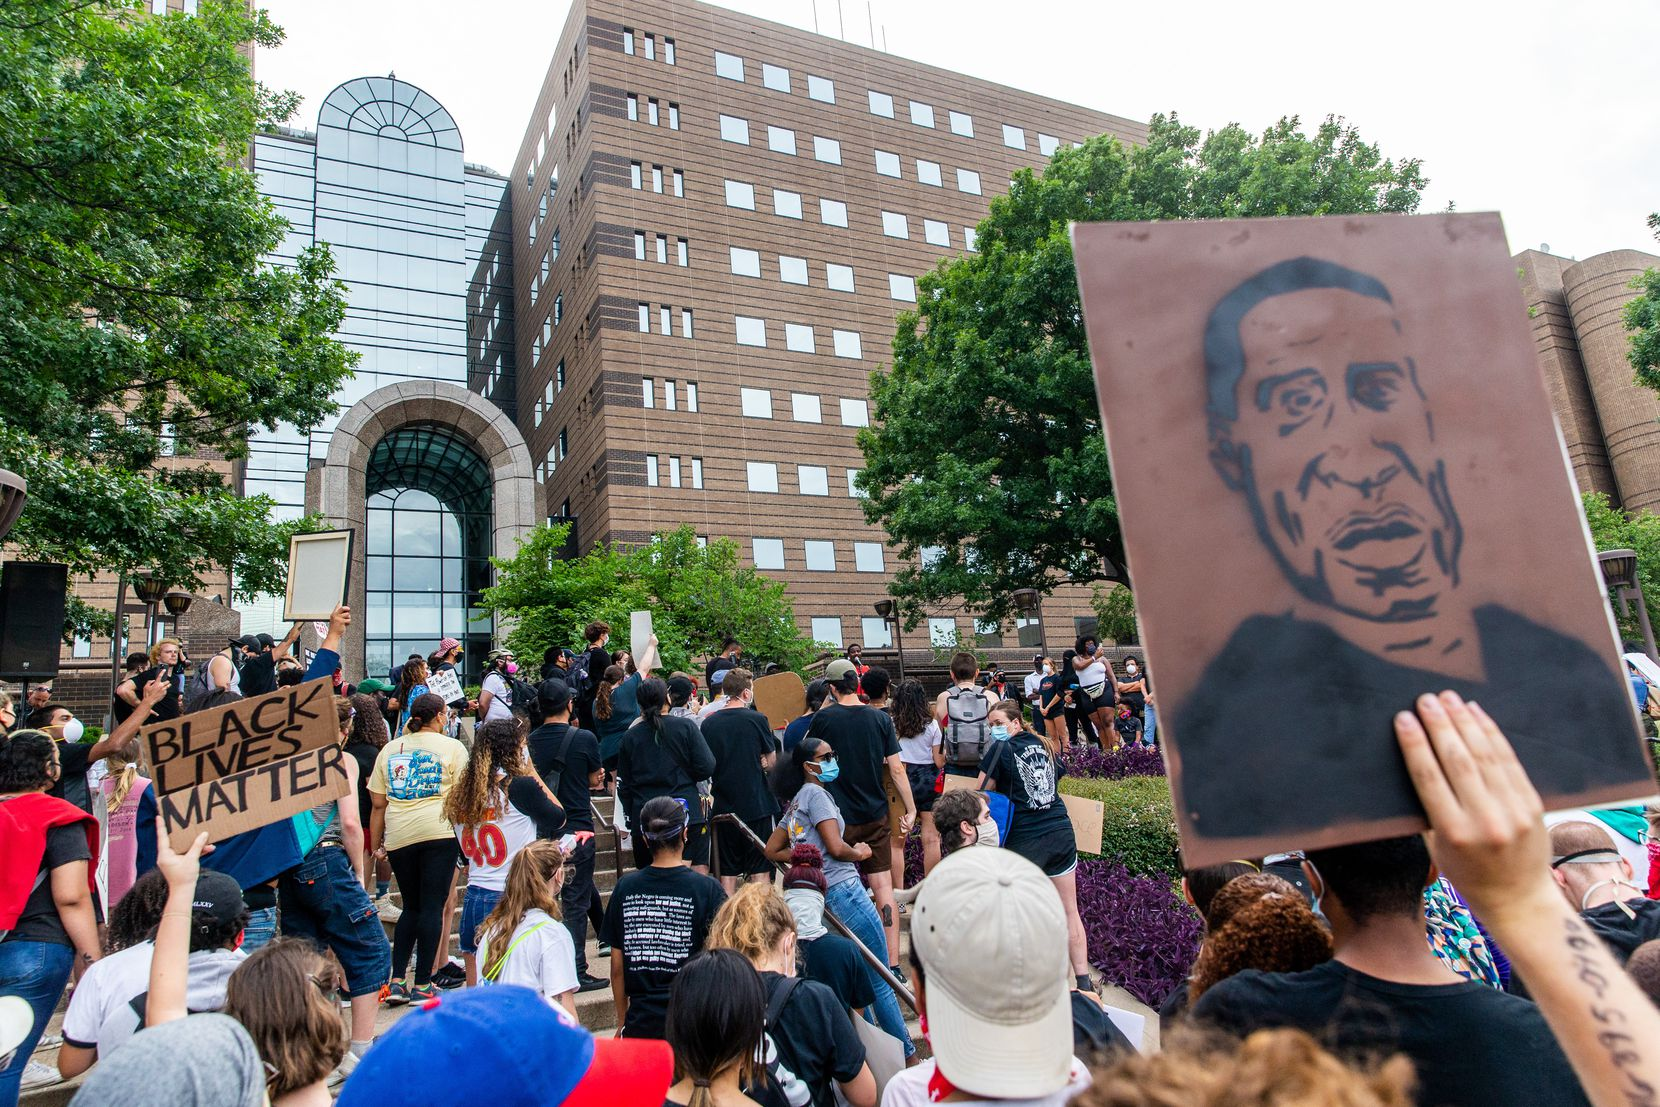 Protesters gather outside the Frank Crowley Courts building past the city's 7 p.m. curfew during a demonstration denouncing police brutality on Monday, June 1, 2020. The demonstration was organized in response to the recent deaths of George Floyd in Minneapolis and Breonna Taylor in Louisville.